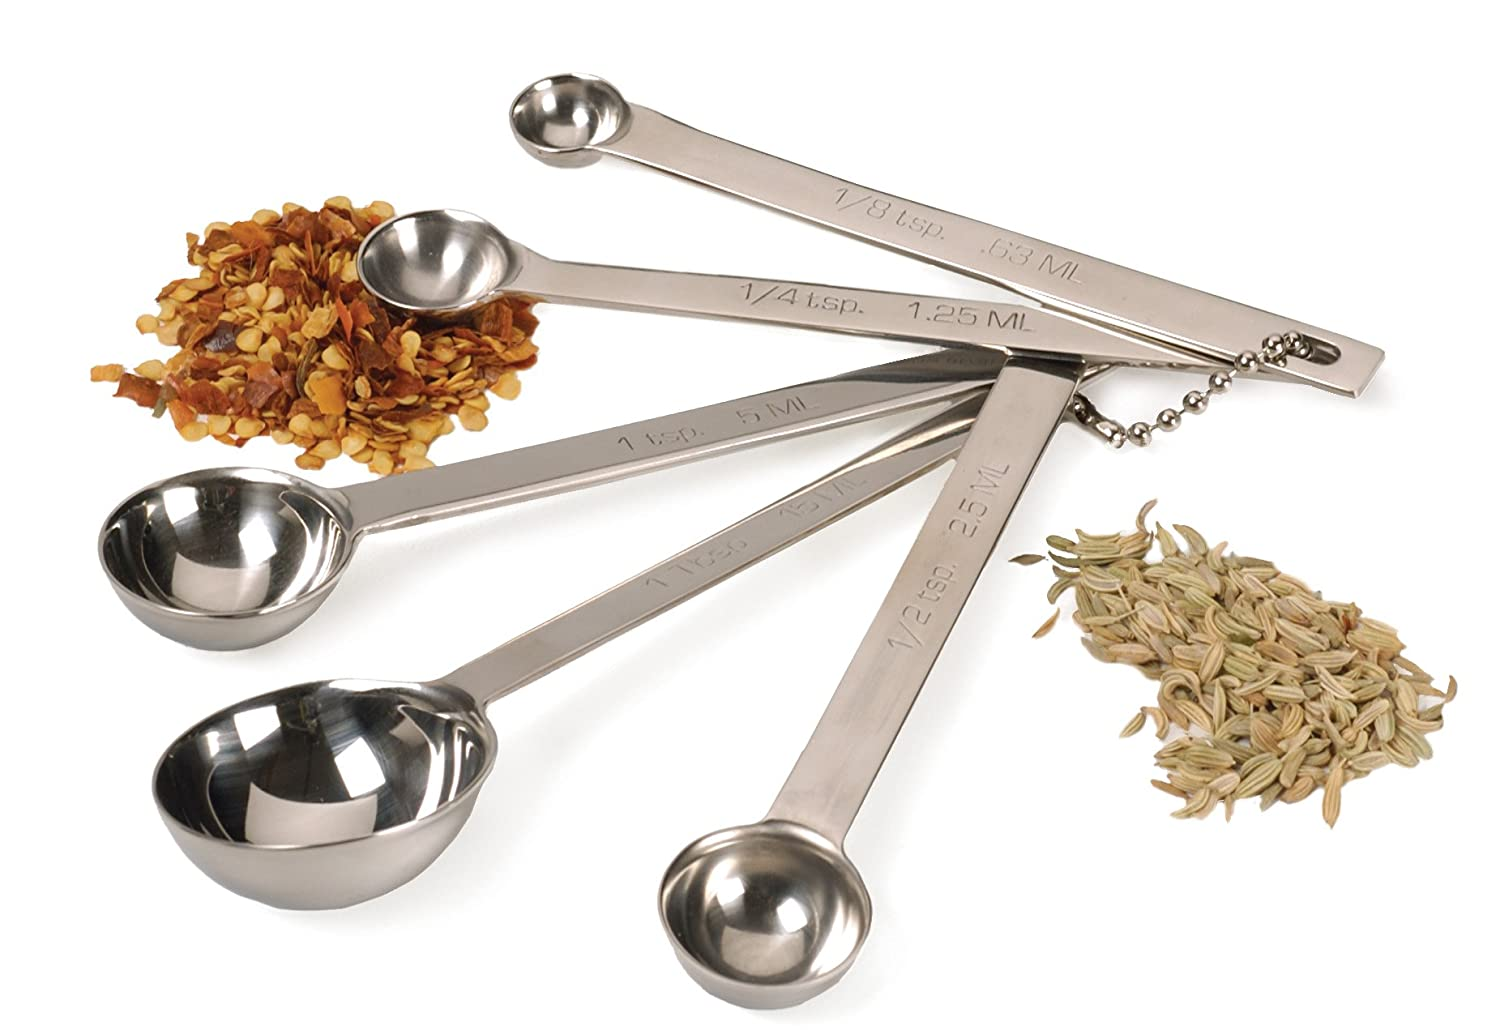 RSVP International Dsp-4 Stainless Steel Measuring Spoon 5 Piece Set